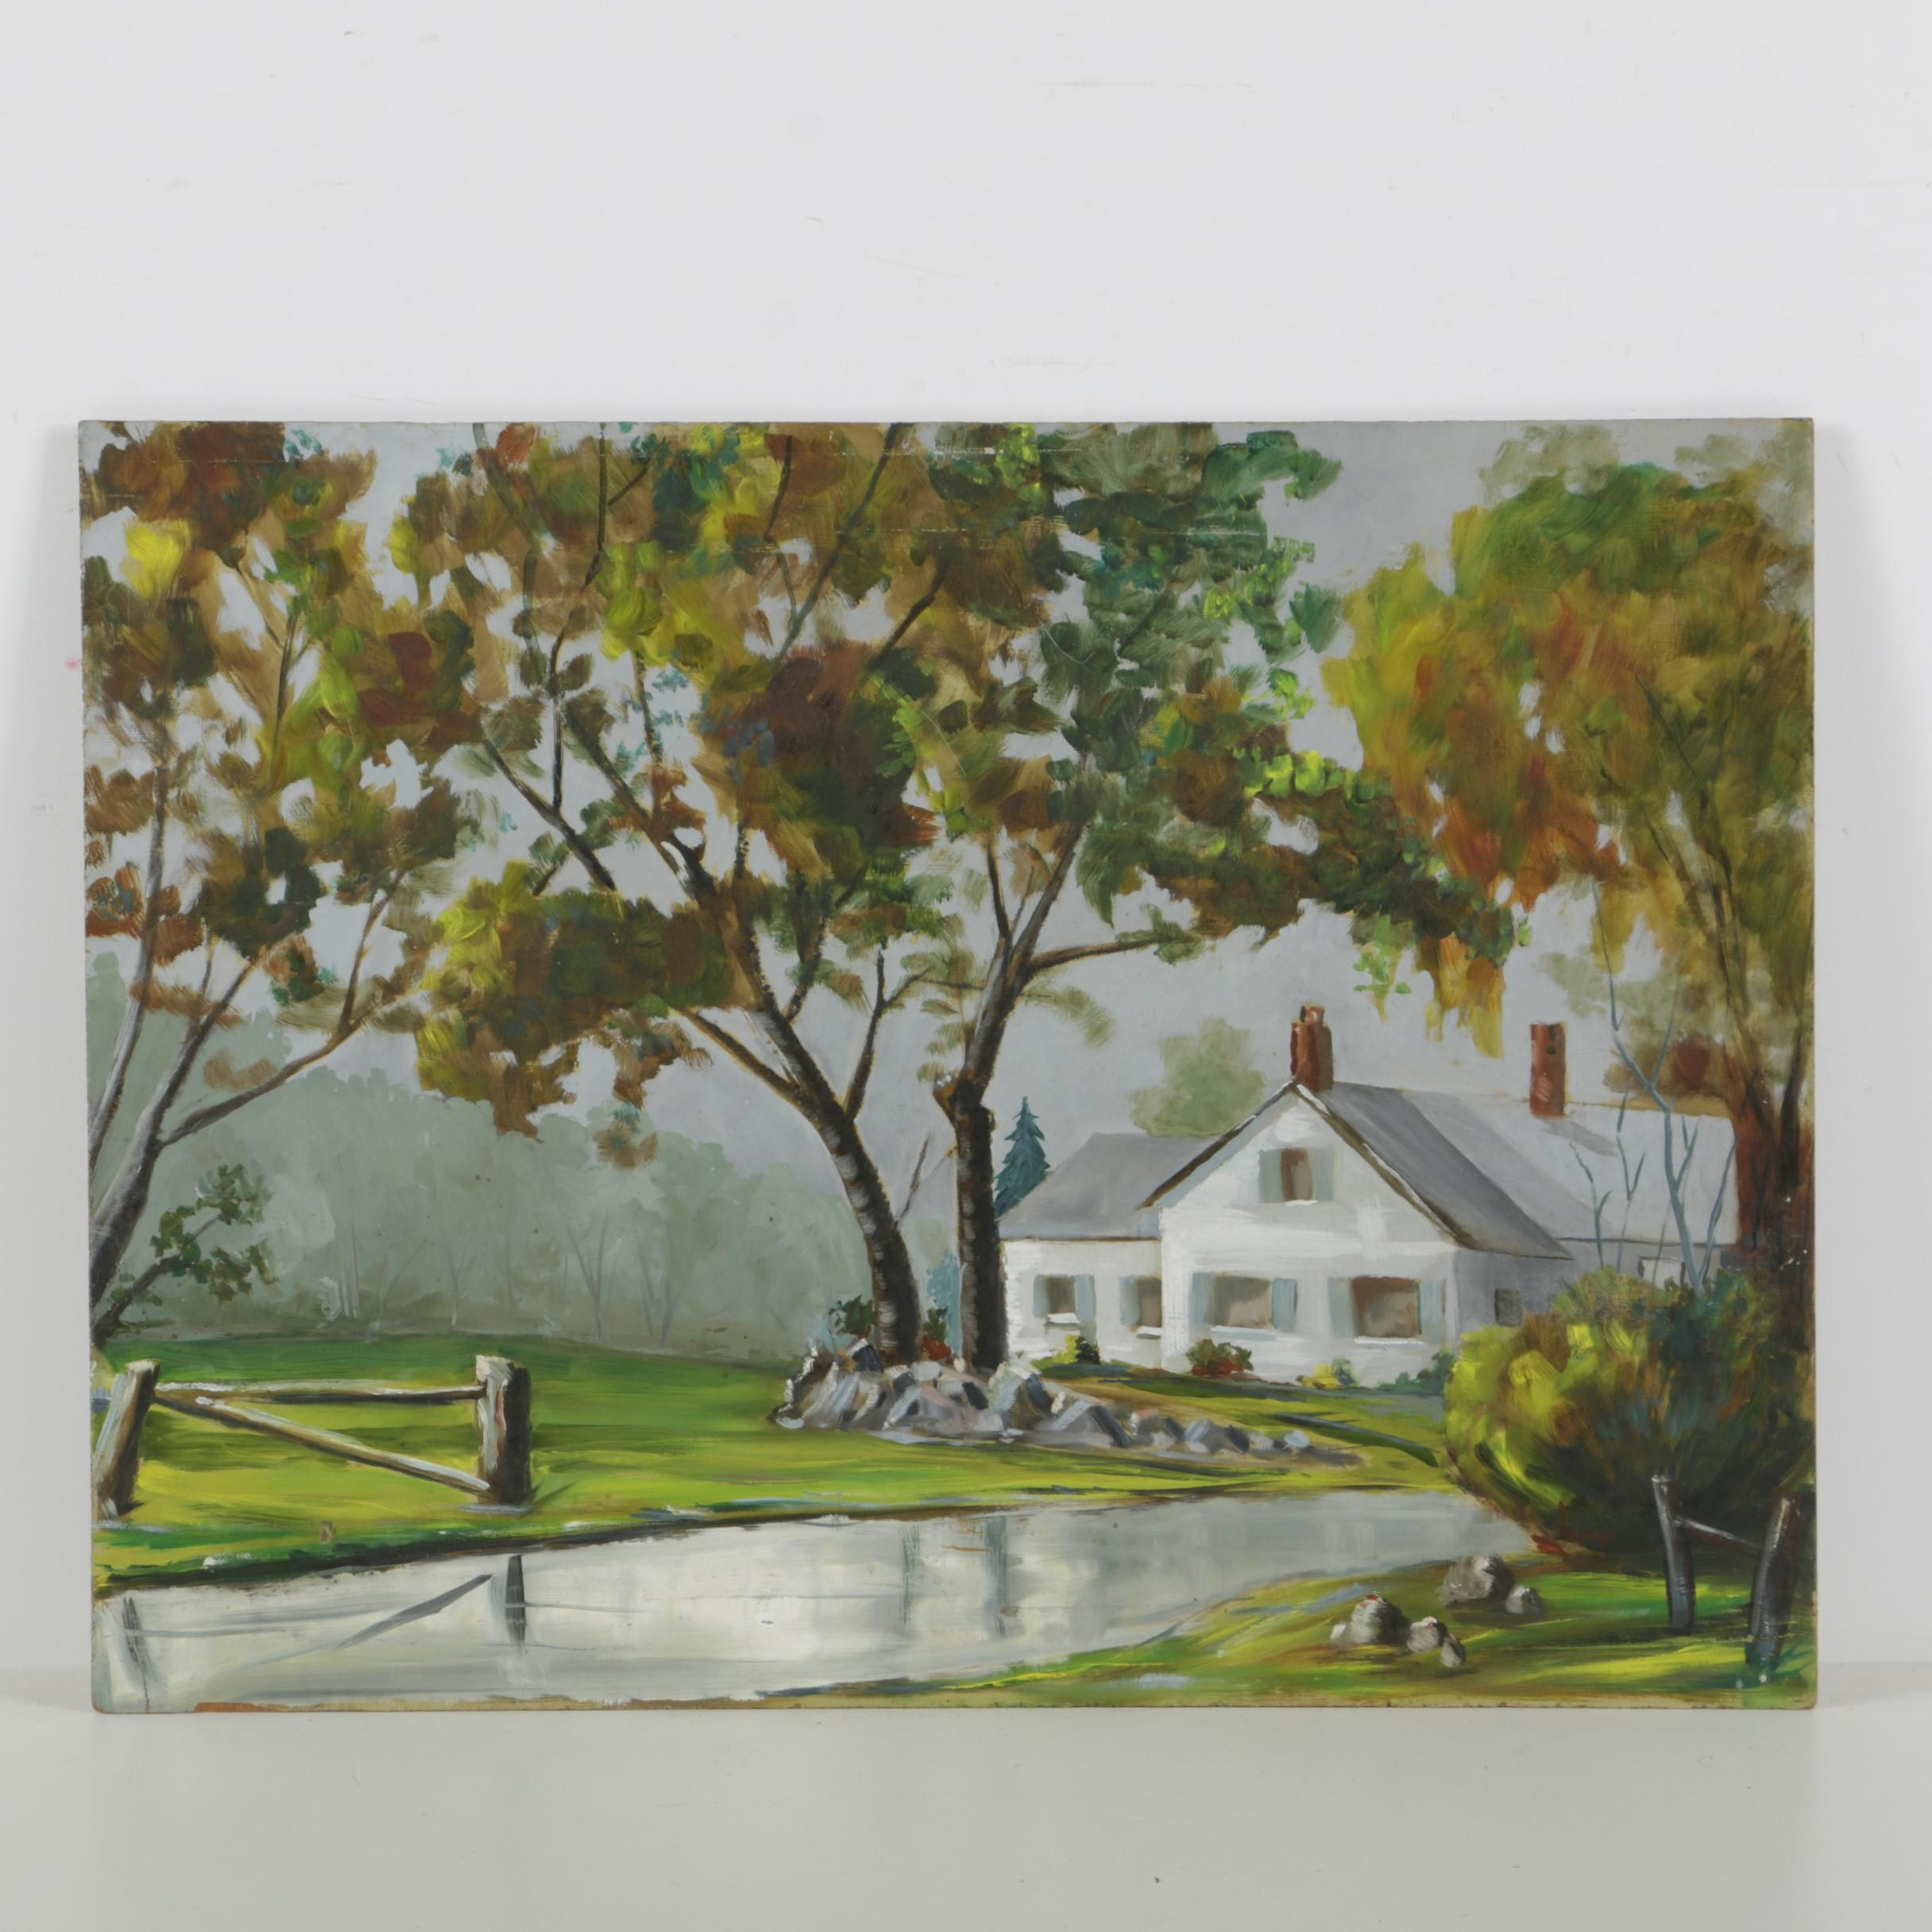 Oil Painting on Masonite of a Country House